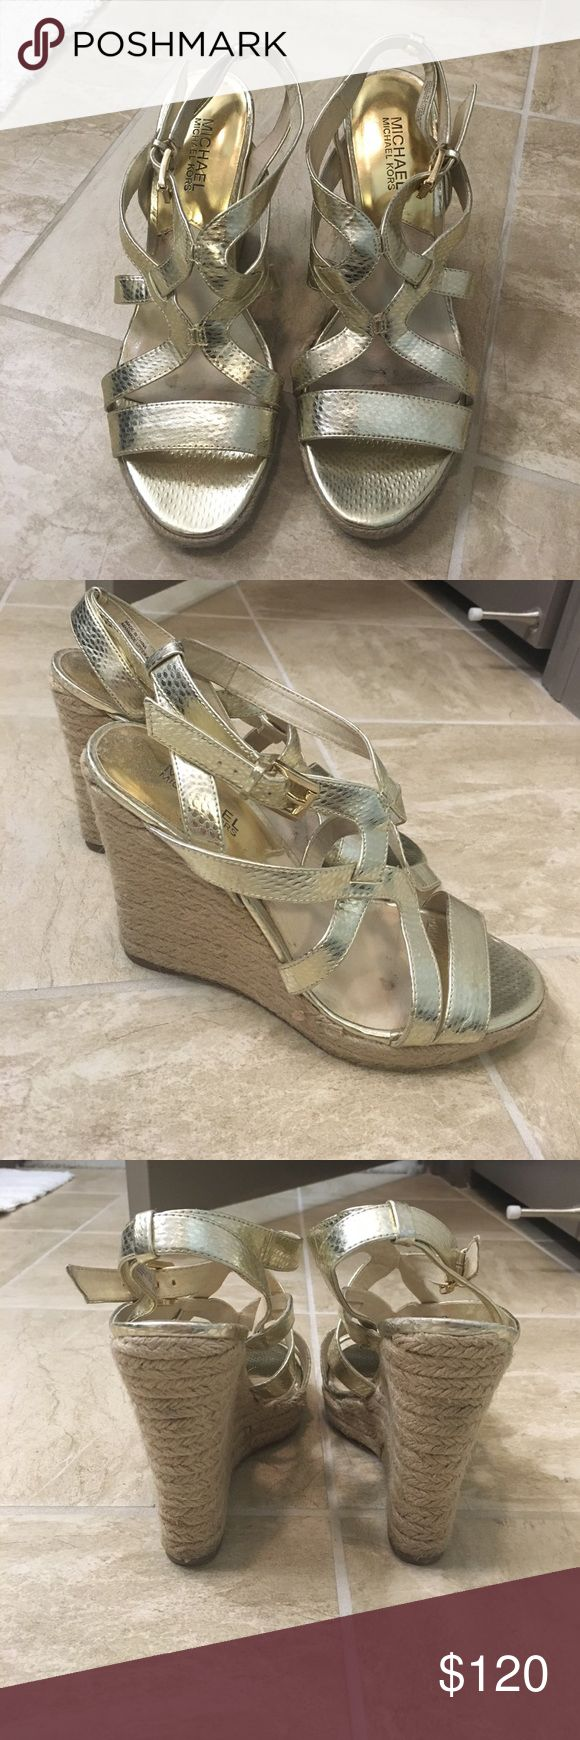 Michael Kors Gold Wedge Sandals Gold wedge sandals perfect for summer! 4 inch heel and very comfortable. MICHAEL Michael Kors Shoes Wedges